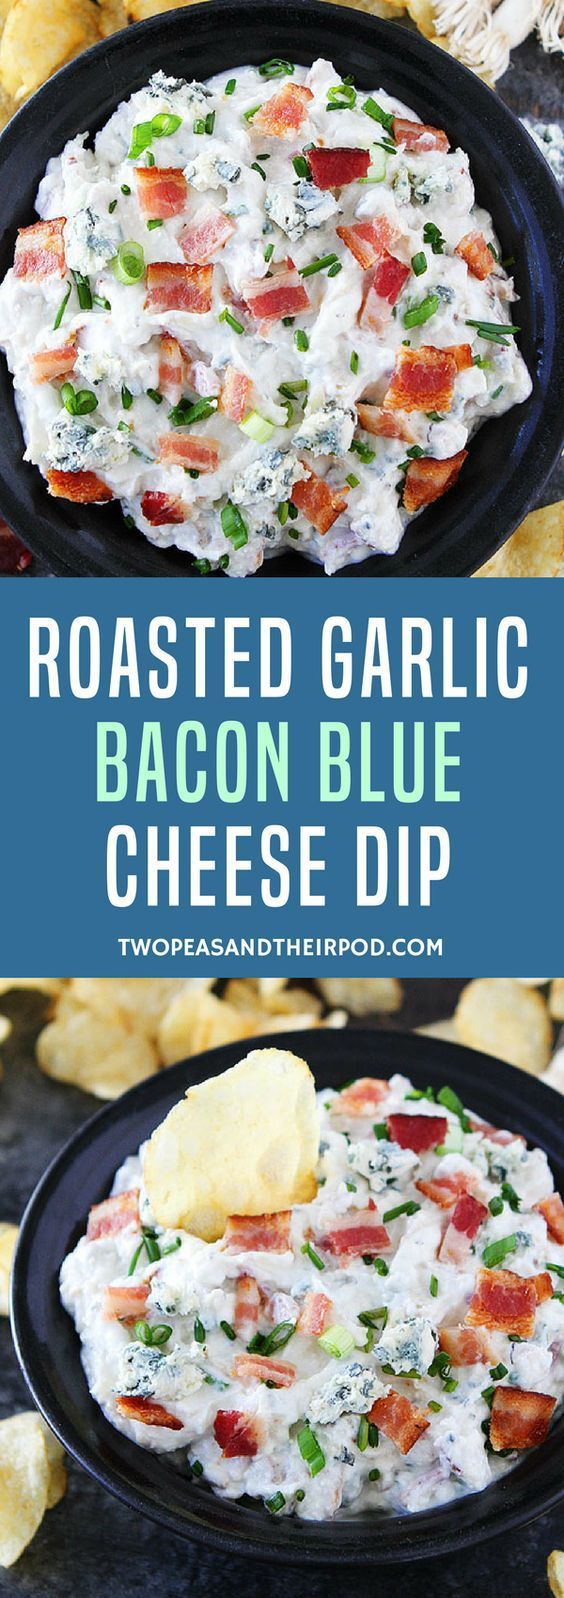 Roasted Garlic Bacon Blue Cheese Dip is the perfect appetizer for game day or parties! Serve with salty chips! #gameday #gamedayfood #dip #appetizer #bacon #cheese